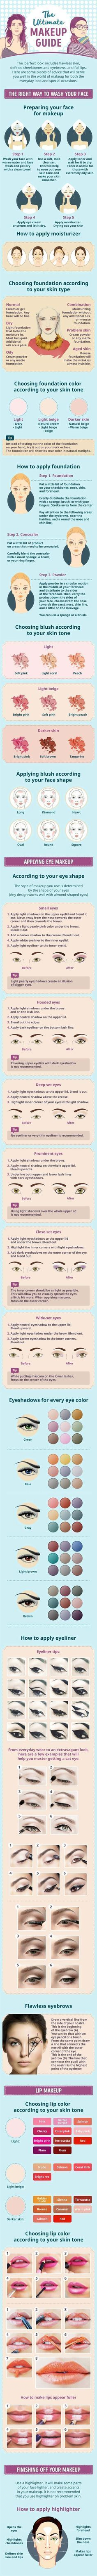 Best Makeup Tutorials for Teens -The Ultimate Makeup Guide You Cant Live Without - Easy Makeup Ideas for Beginners - Step by Step Tutorials for Foundation, Eye Shadow, Lipstick, Cheeks, Contour, Eyebrows and Eyes - Awesome Makeup Hacks and Tips for Simpl